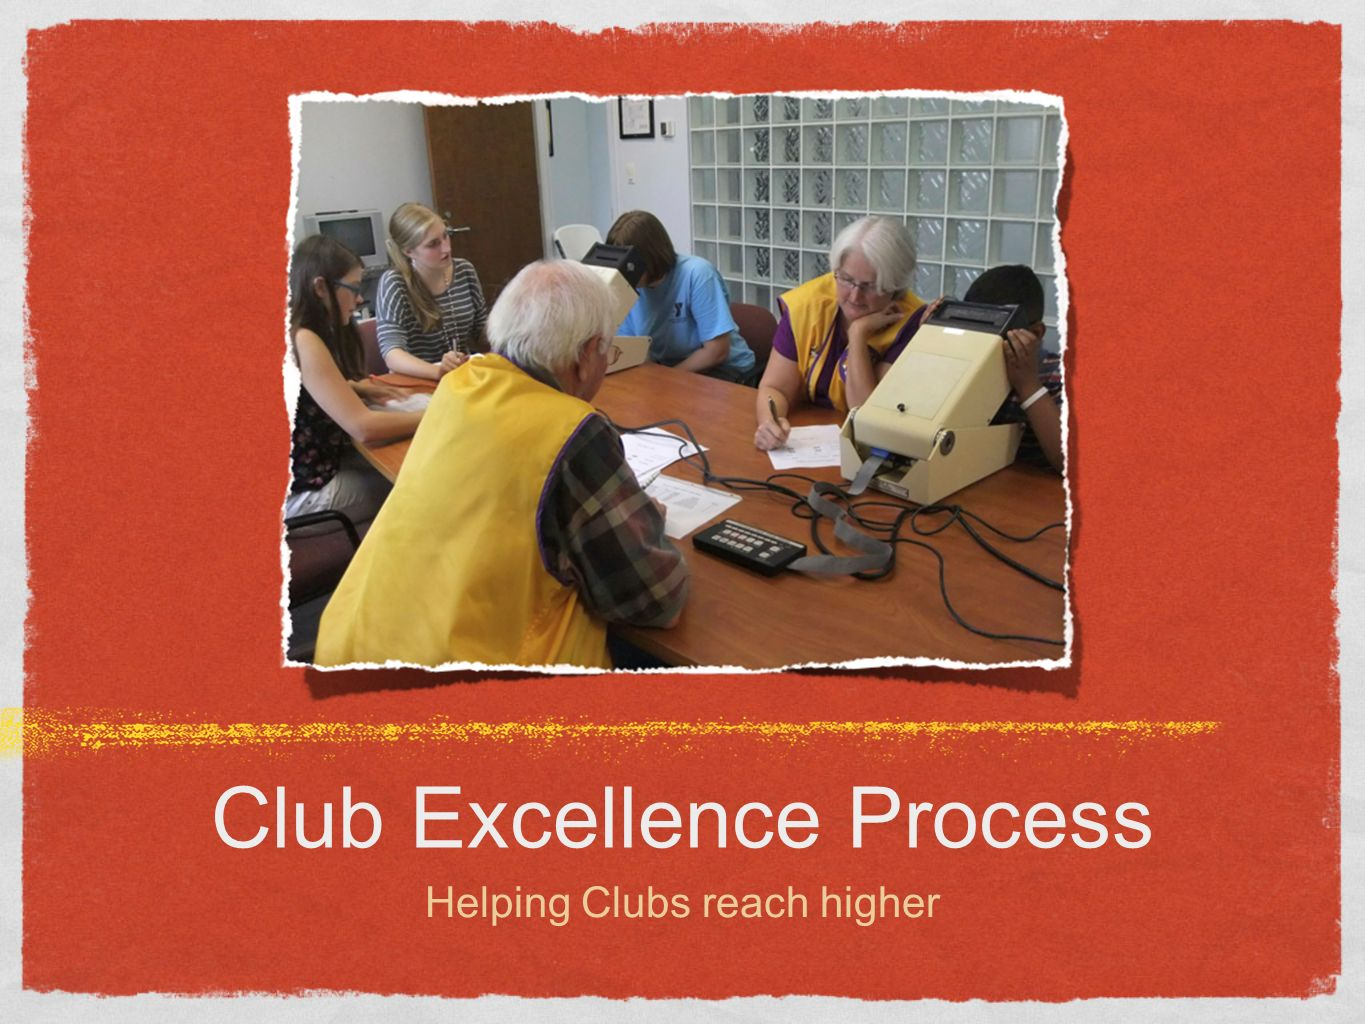 Club Excellence Process Helping Clubs reach higher